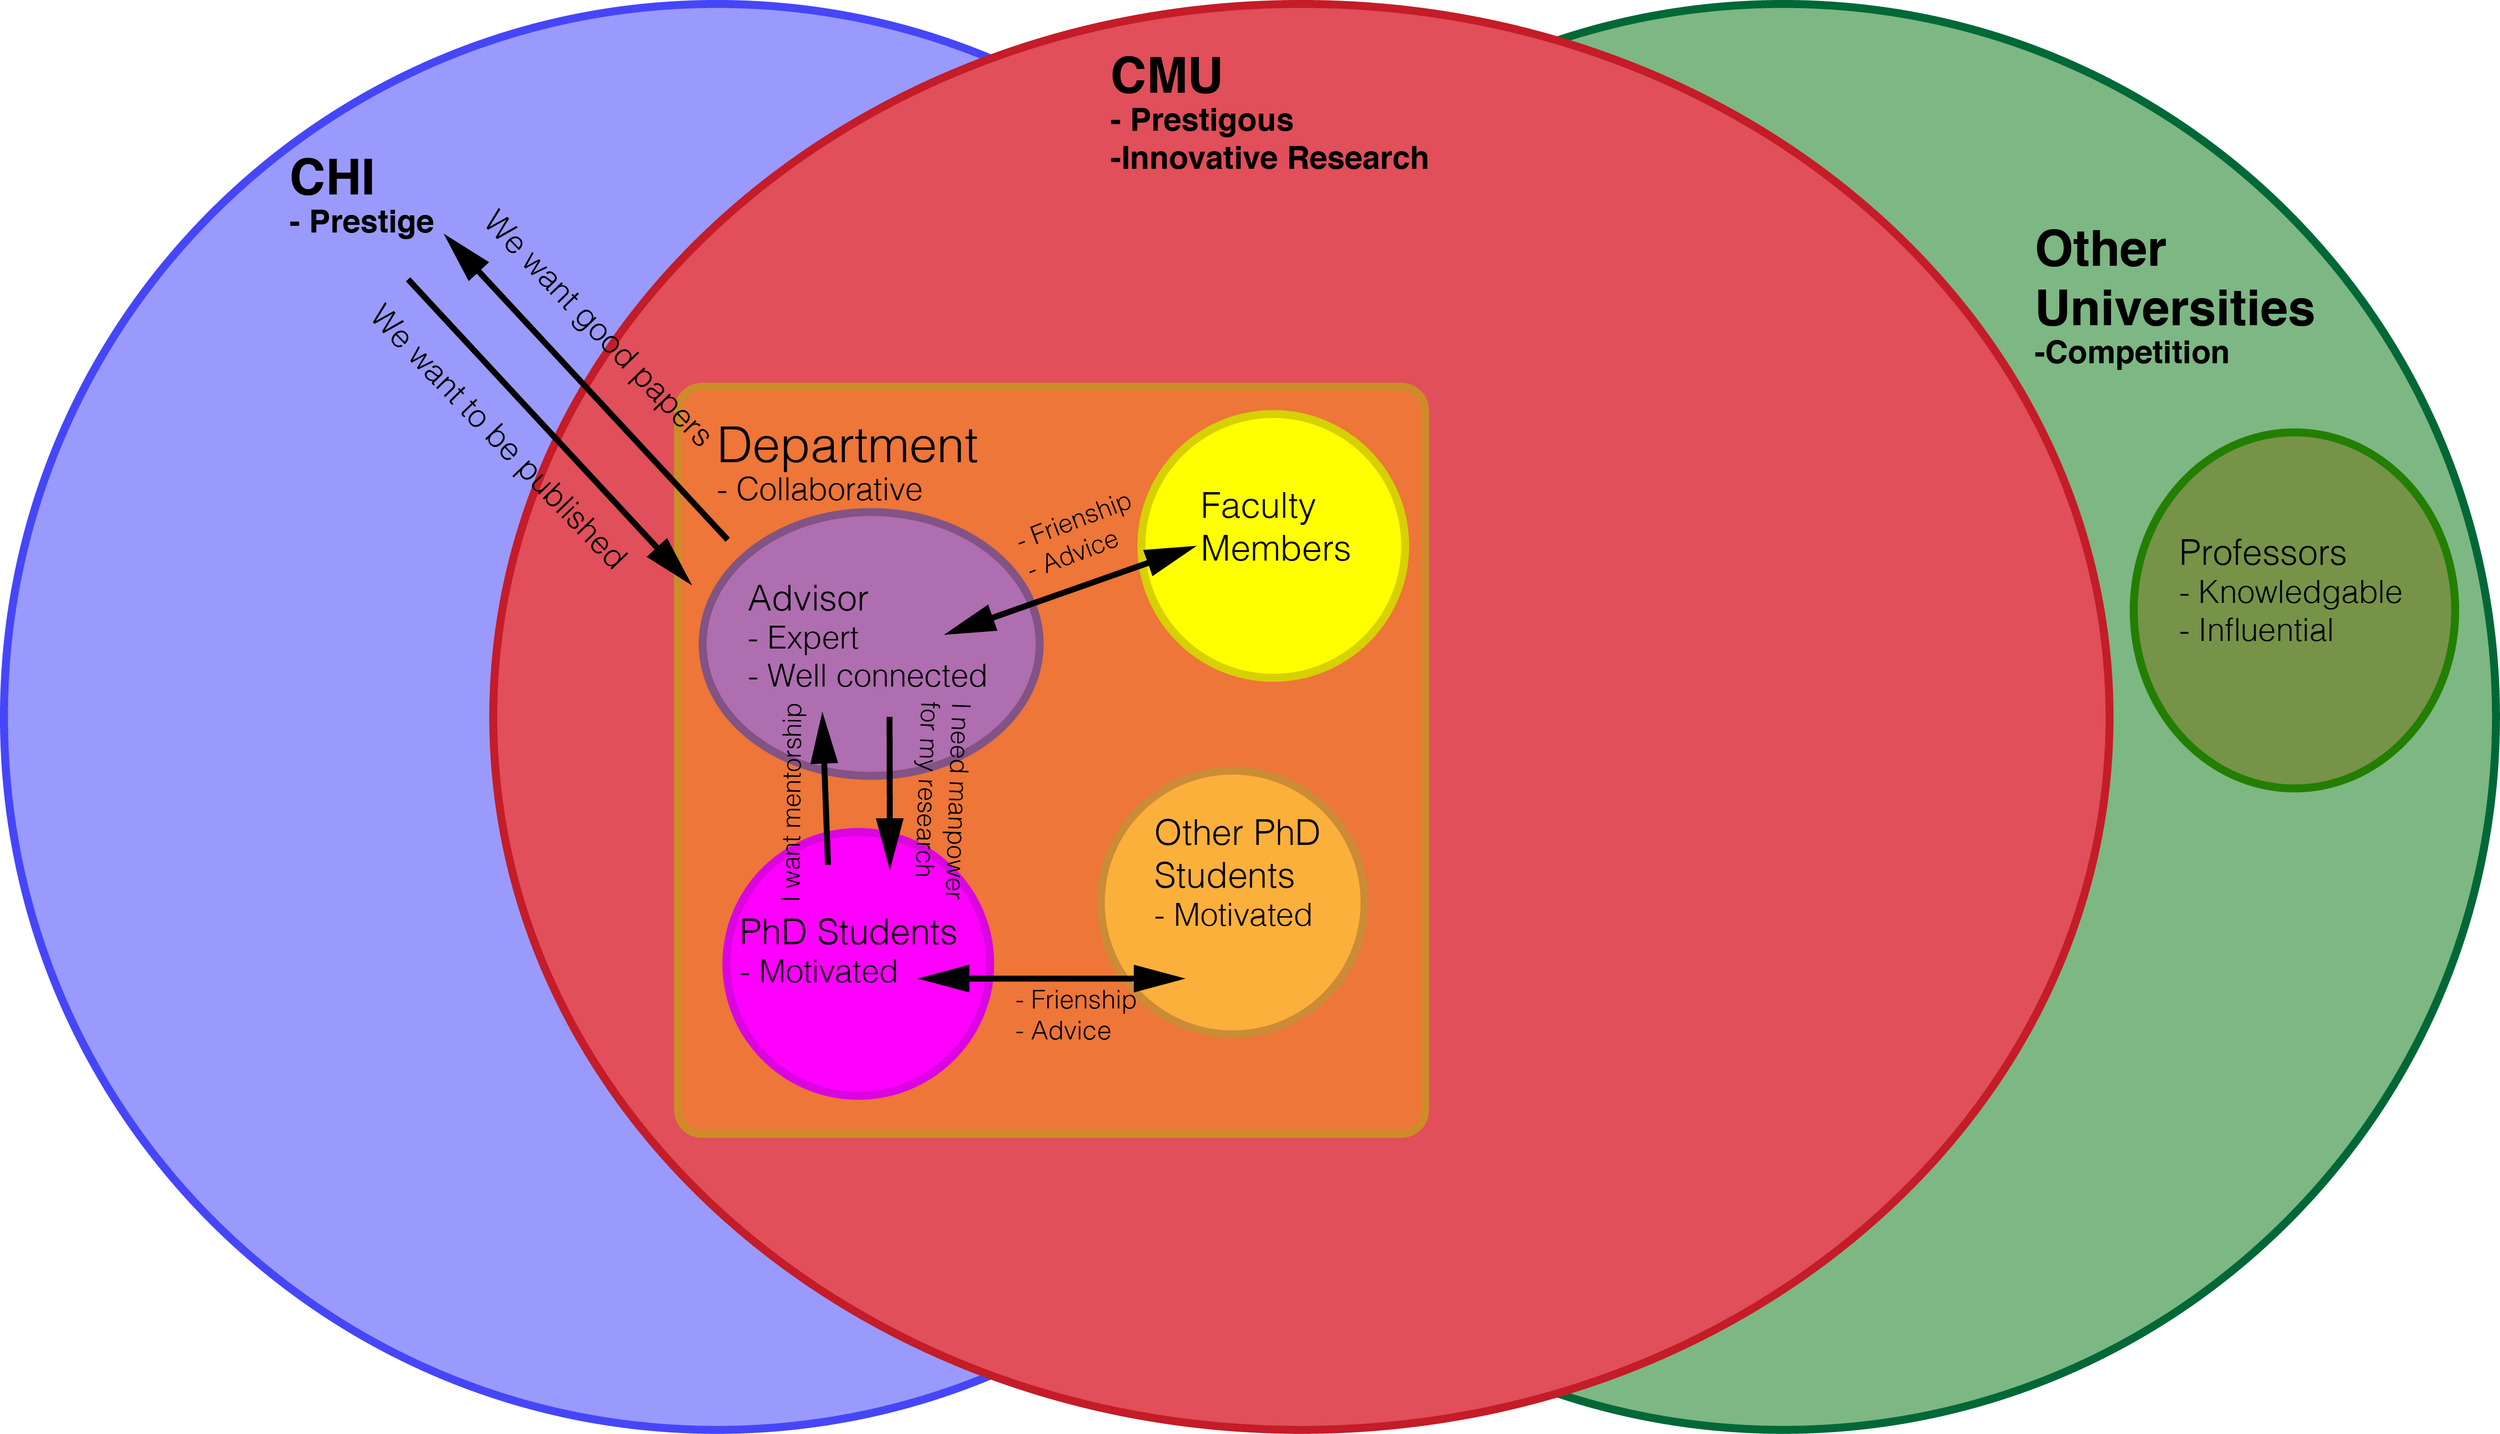 A cultural model of academic research.